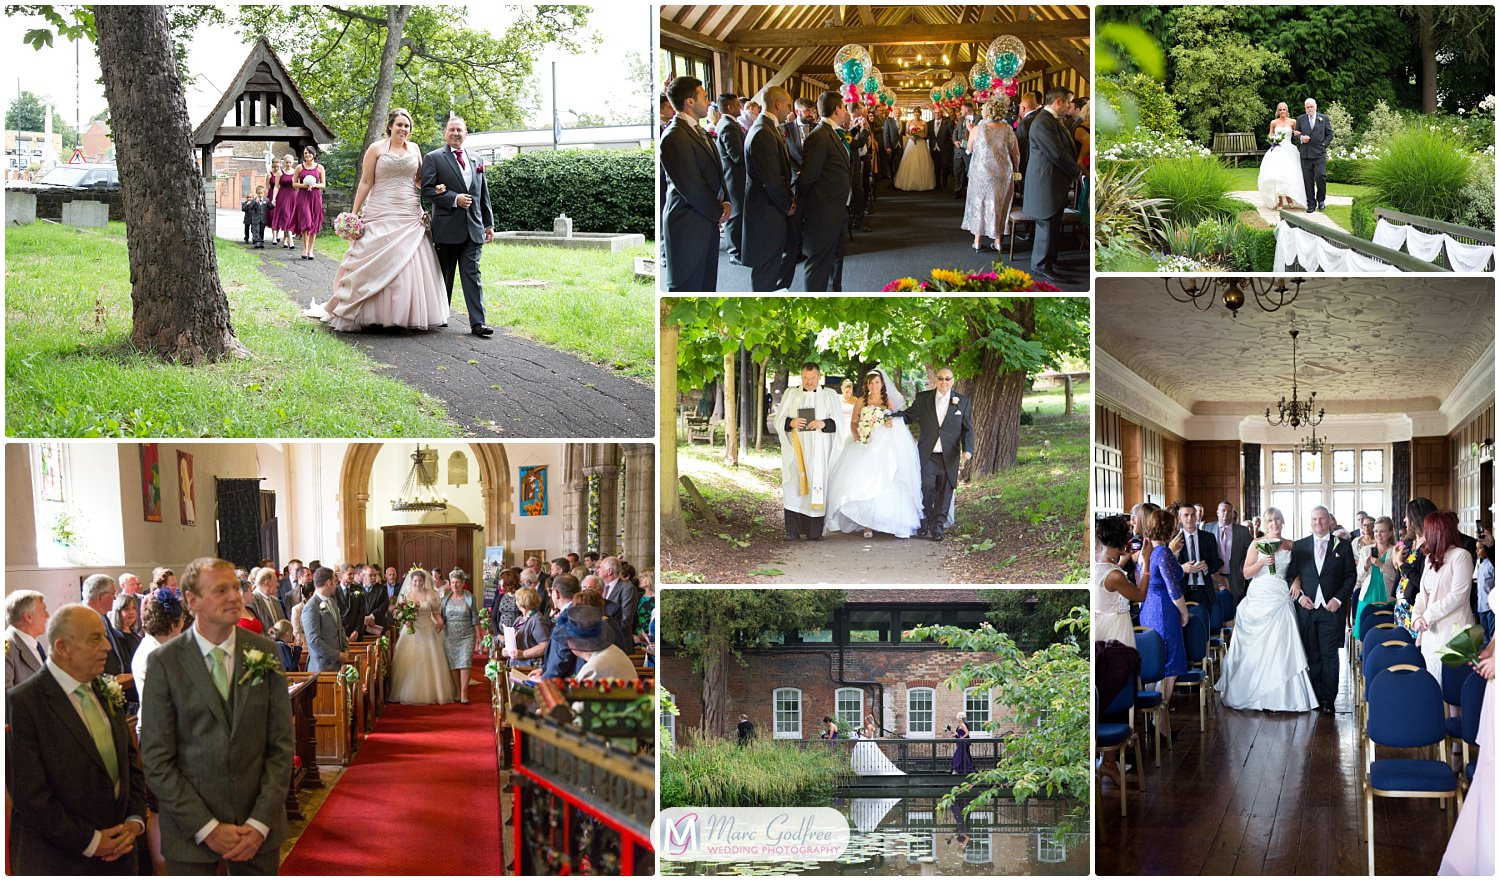 wedding photos you probably didn't consider-walk to the ceremony